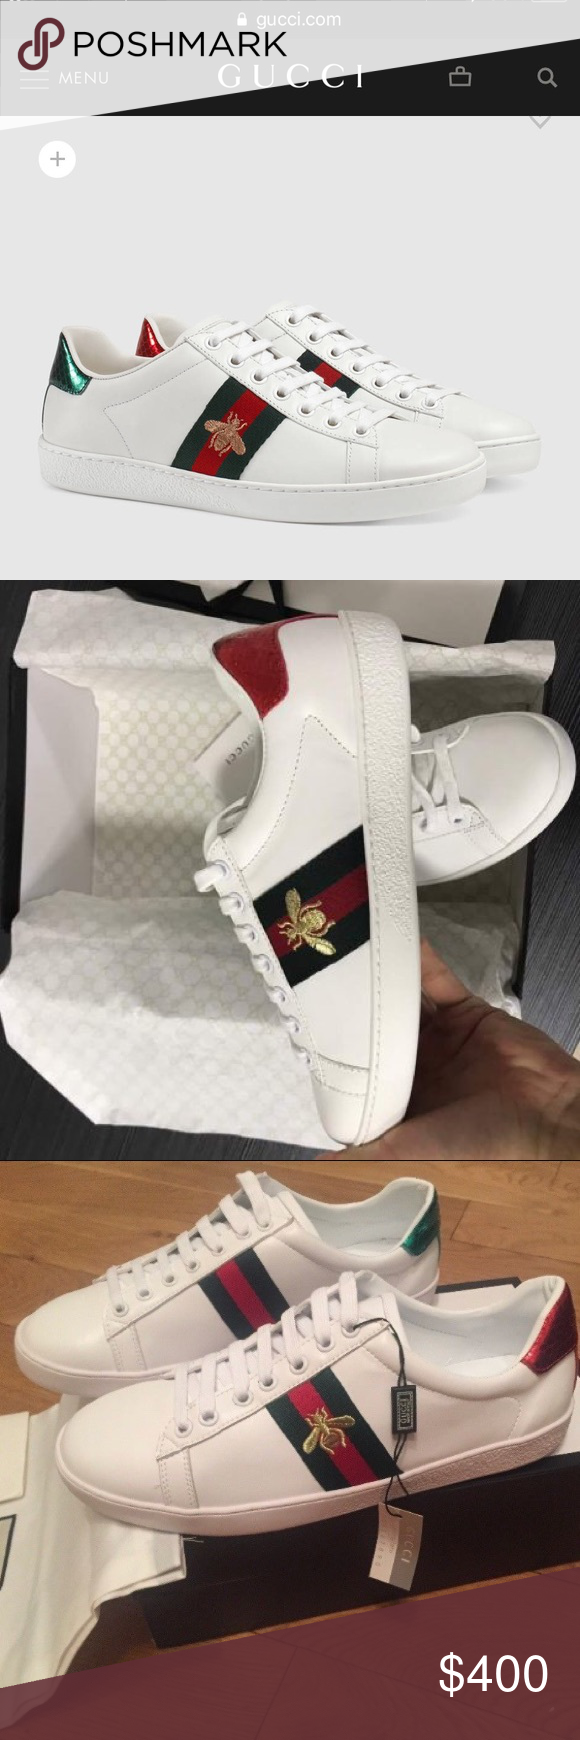 6bd206884 GUCCI ACE BEE SNEAKER  AUTHENTIC   NEGOTIABLE  White leather with green and  red